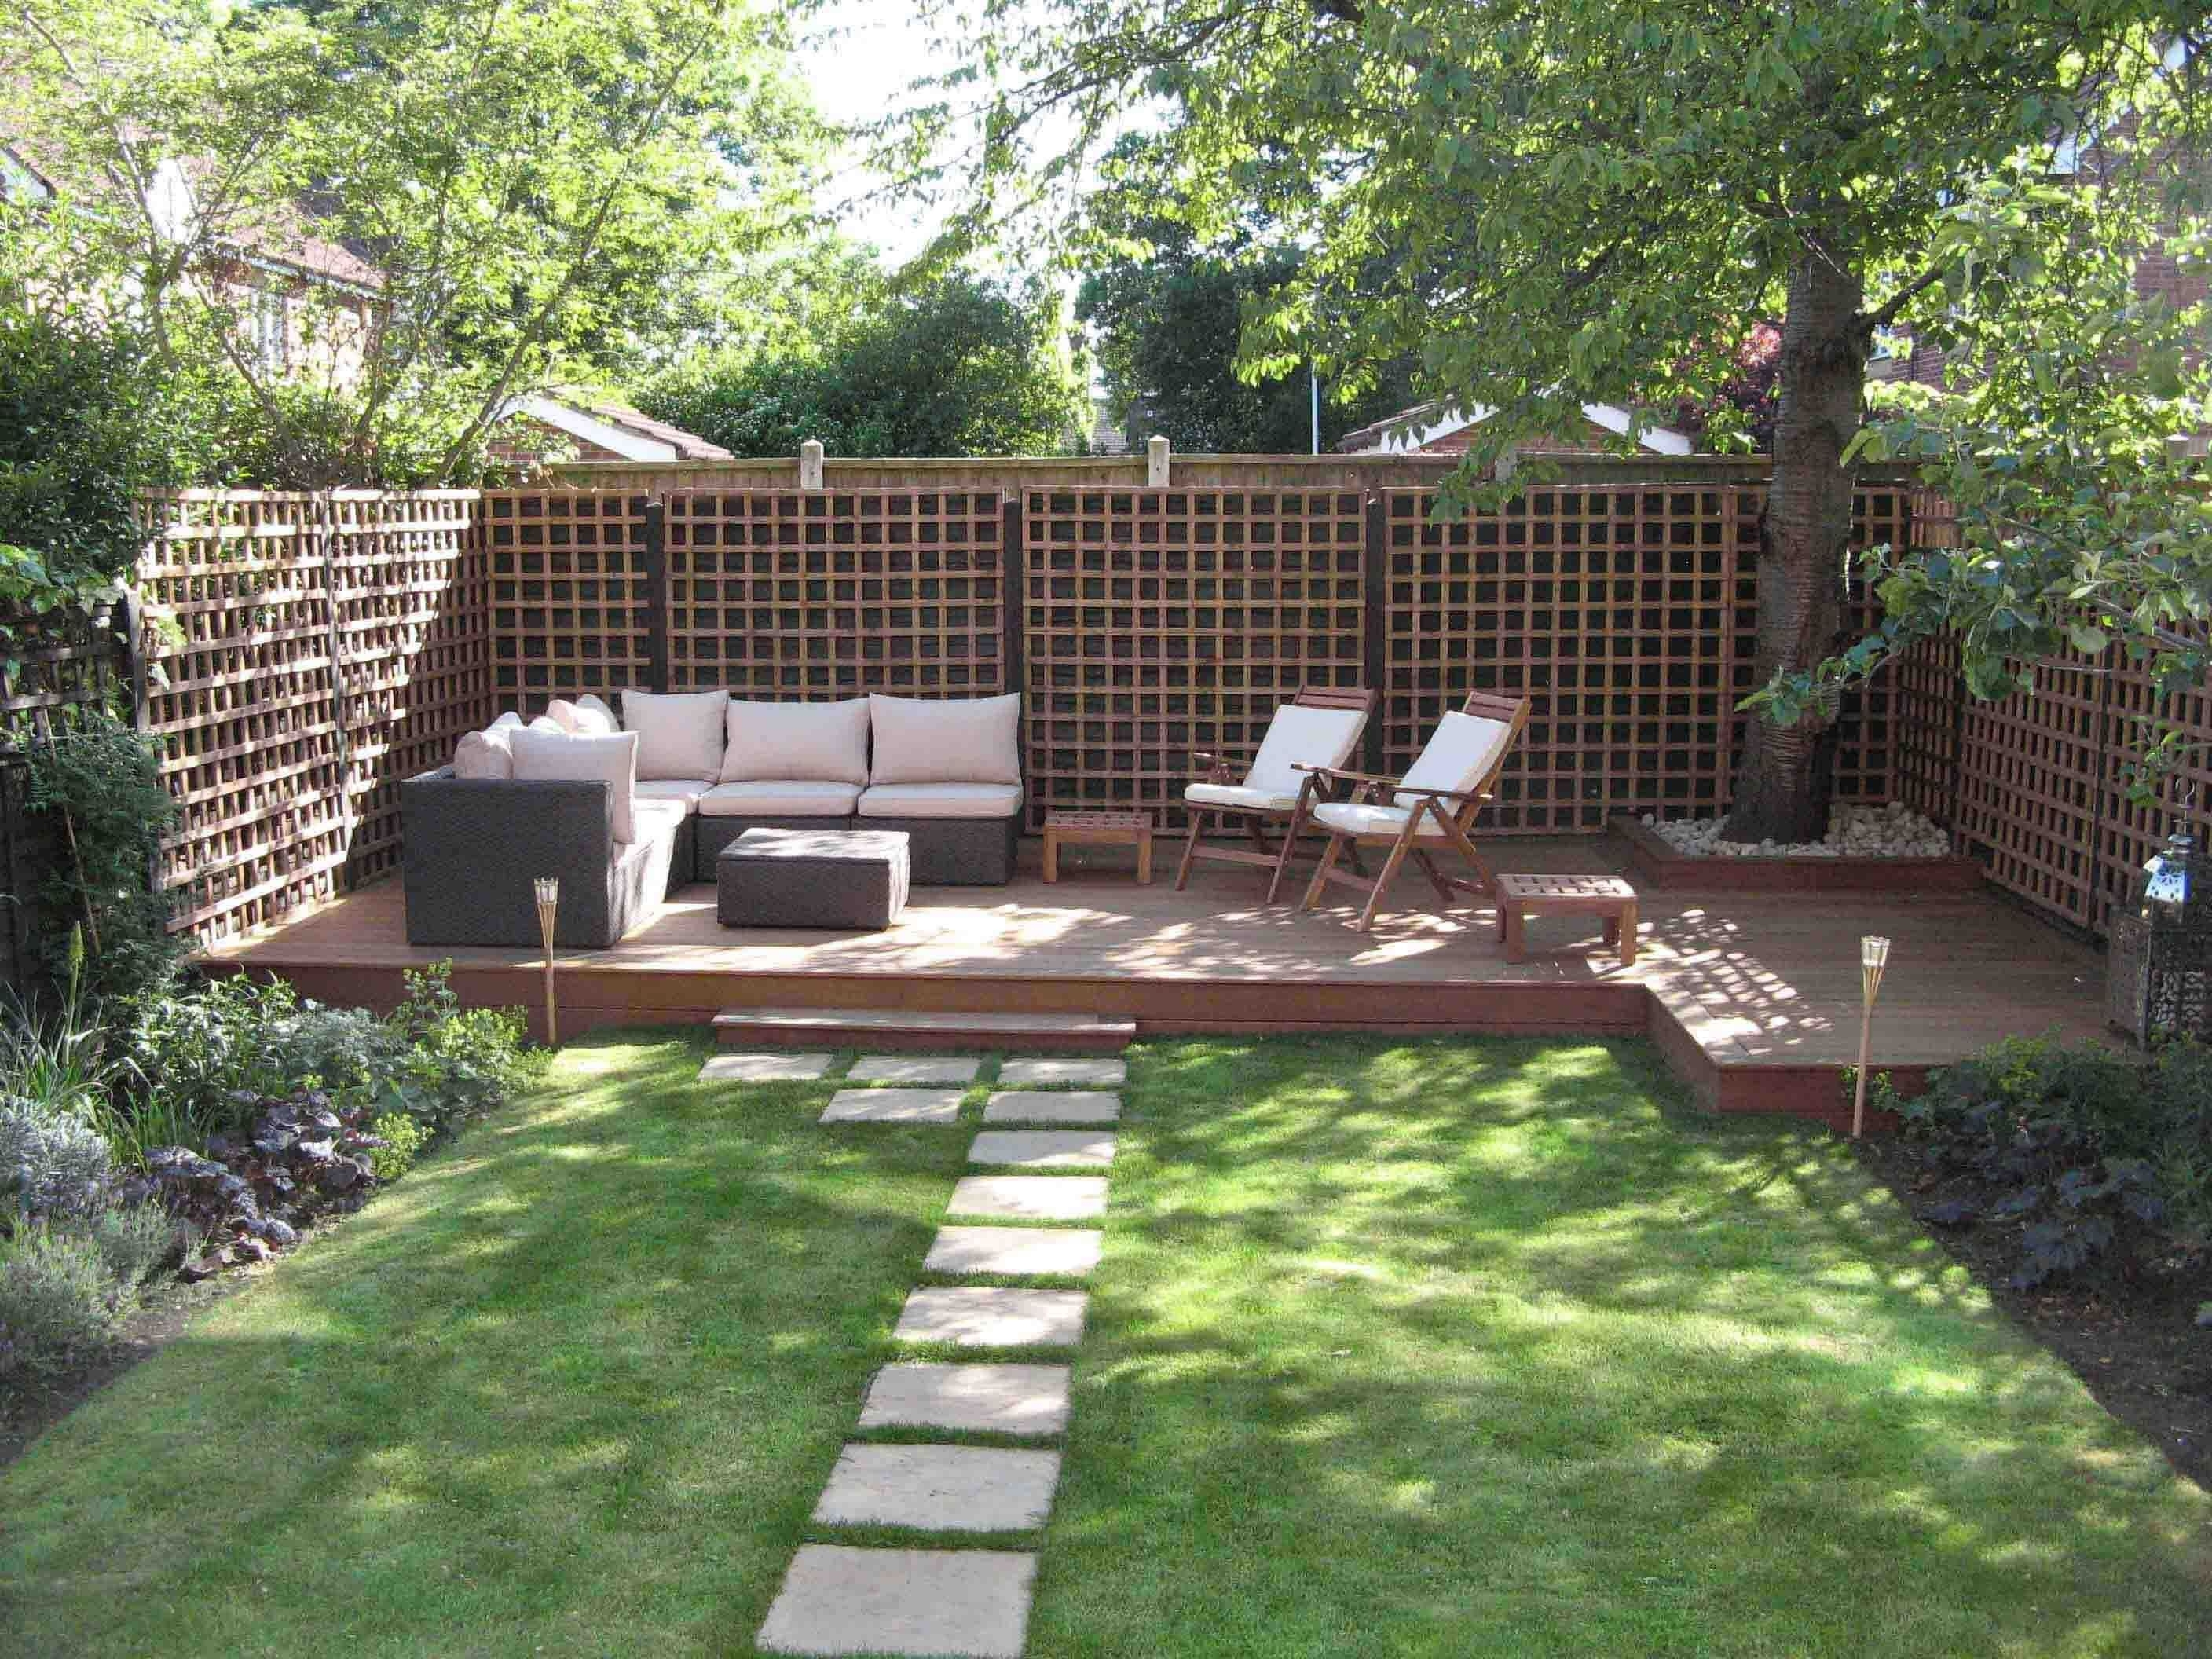 25 Landscape Design For Small Spaces | Backyard | Small Backyard with Garden Design Back Of House